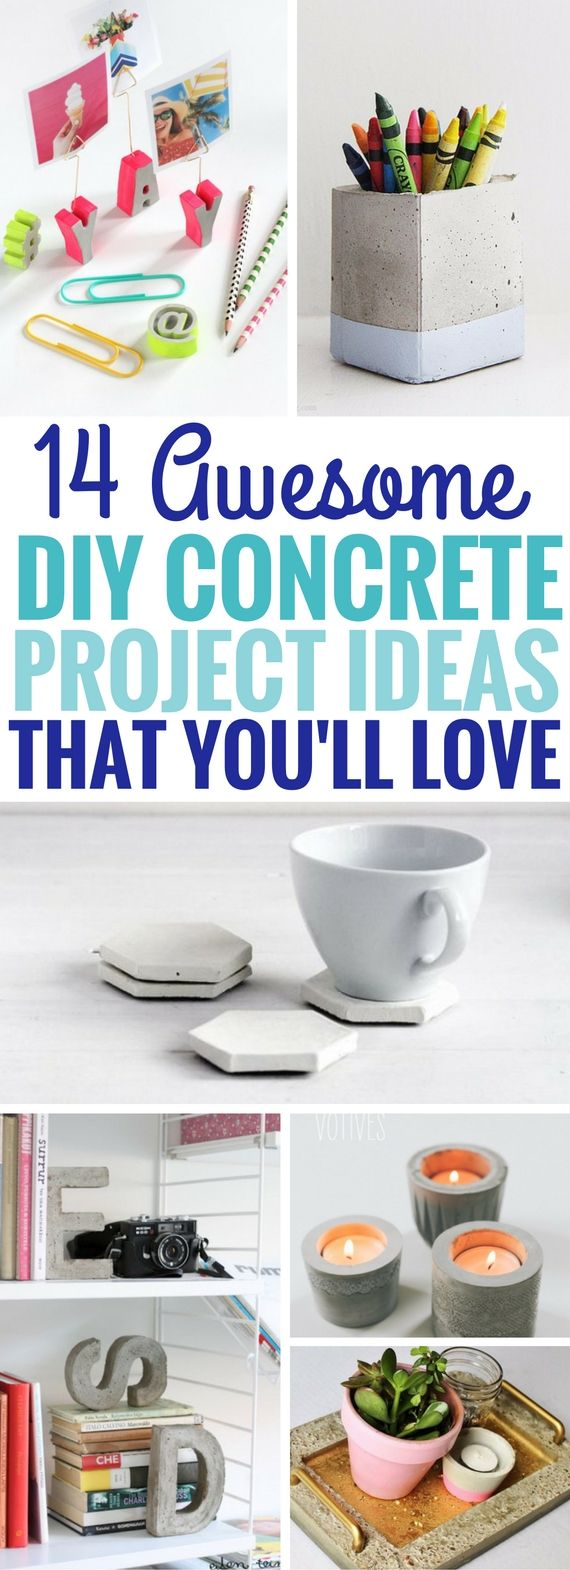 These DIY Concrete Project Ideas are so AMAZING. Seriously, the BEST diy projects I've seen using cement. Number 5 and 6 are so much fun to make! I can't wait to try making the rest of the concrete projects.